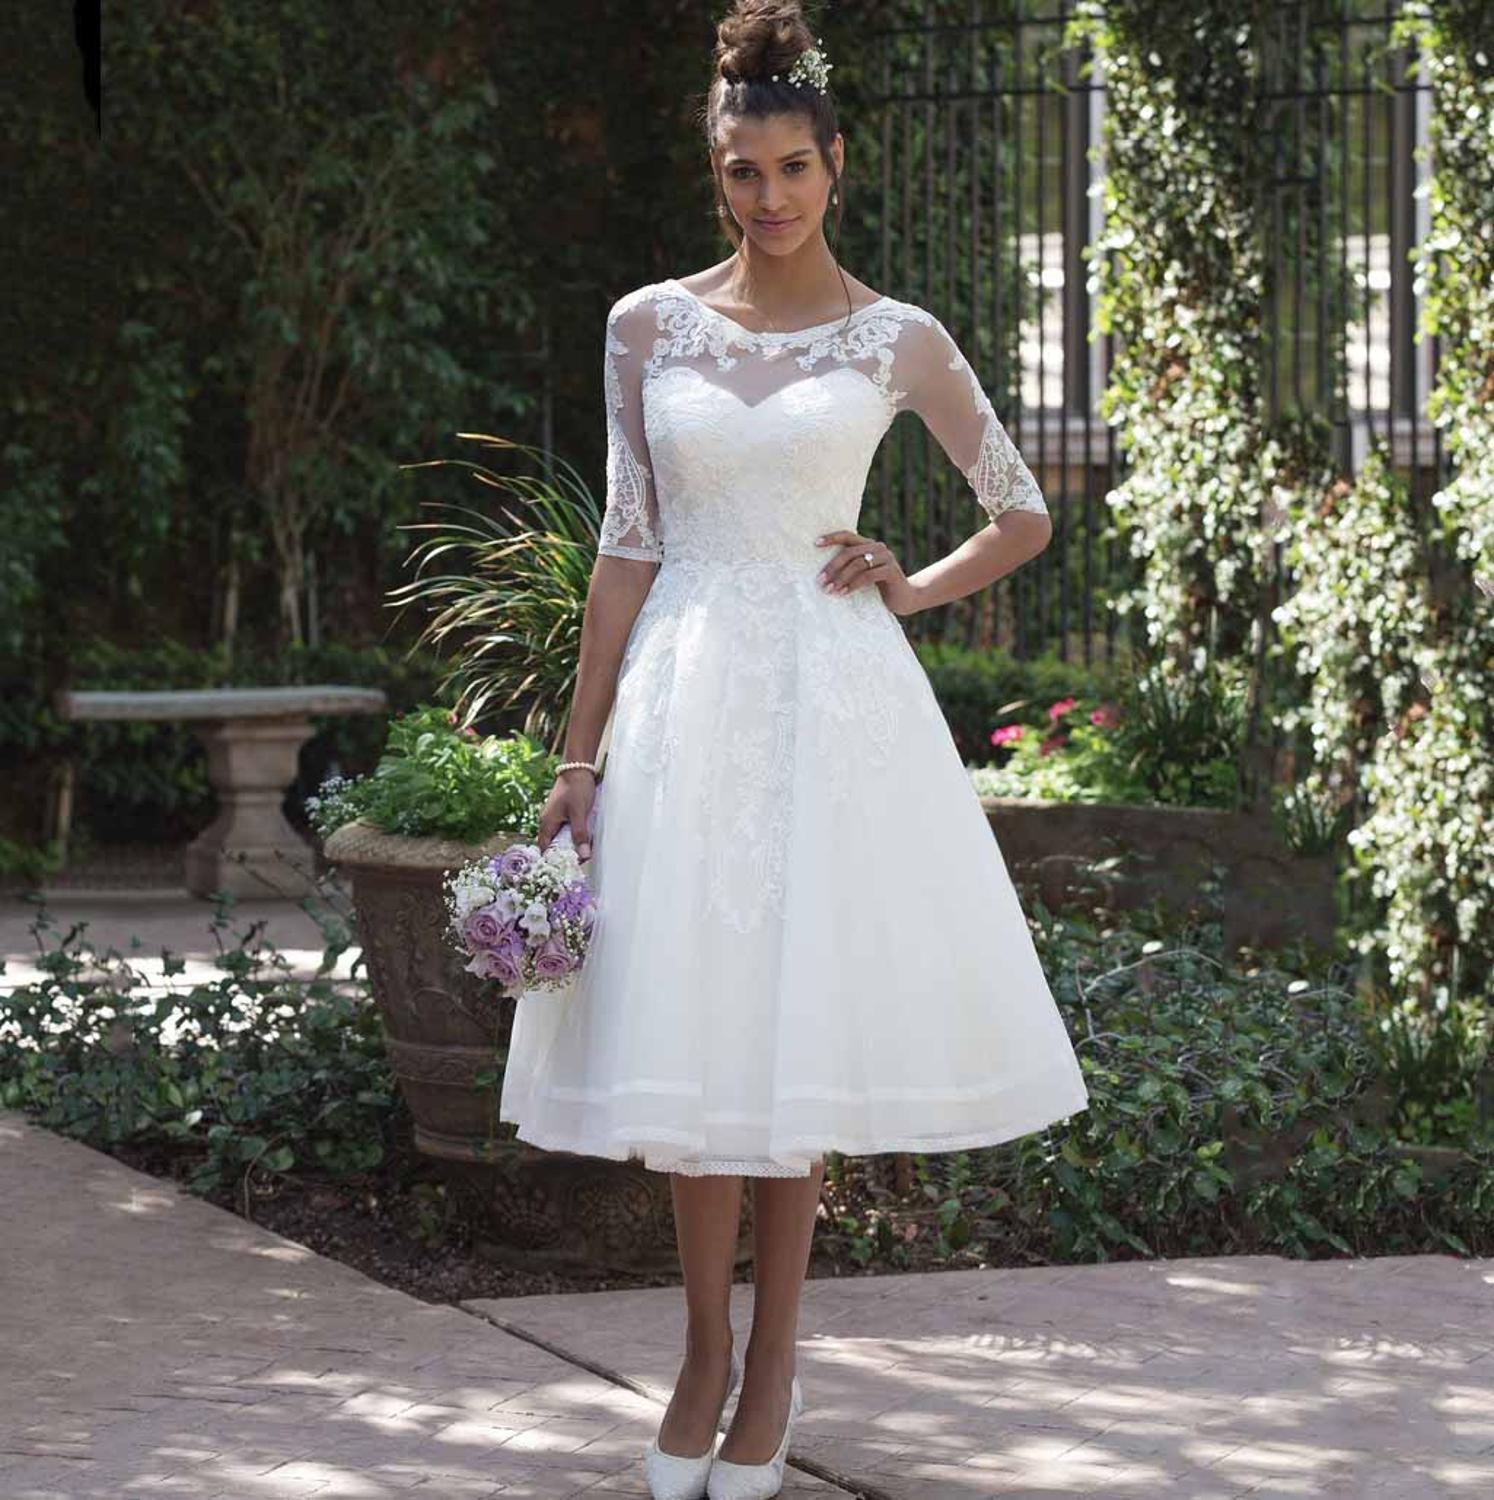 Vestido De Noiva Curto 2019 New Fashion Sheer Scoop Half Sleeve Knee Length Short Wedding Dress Cheap Lace Appliques Bridal Gown